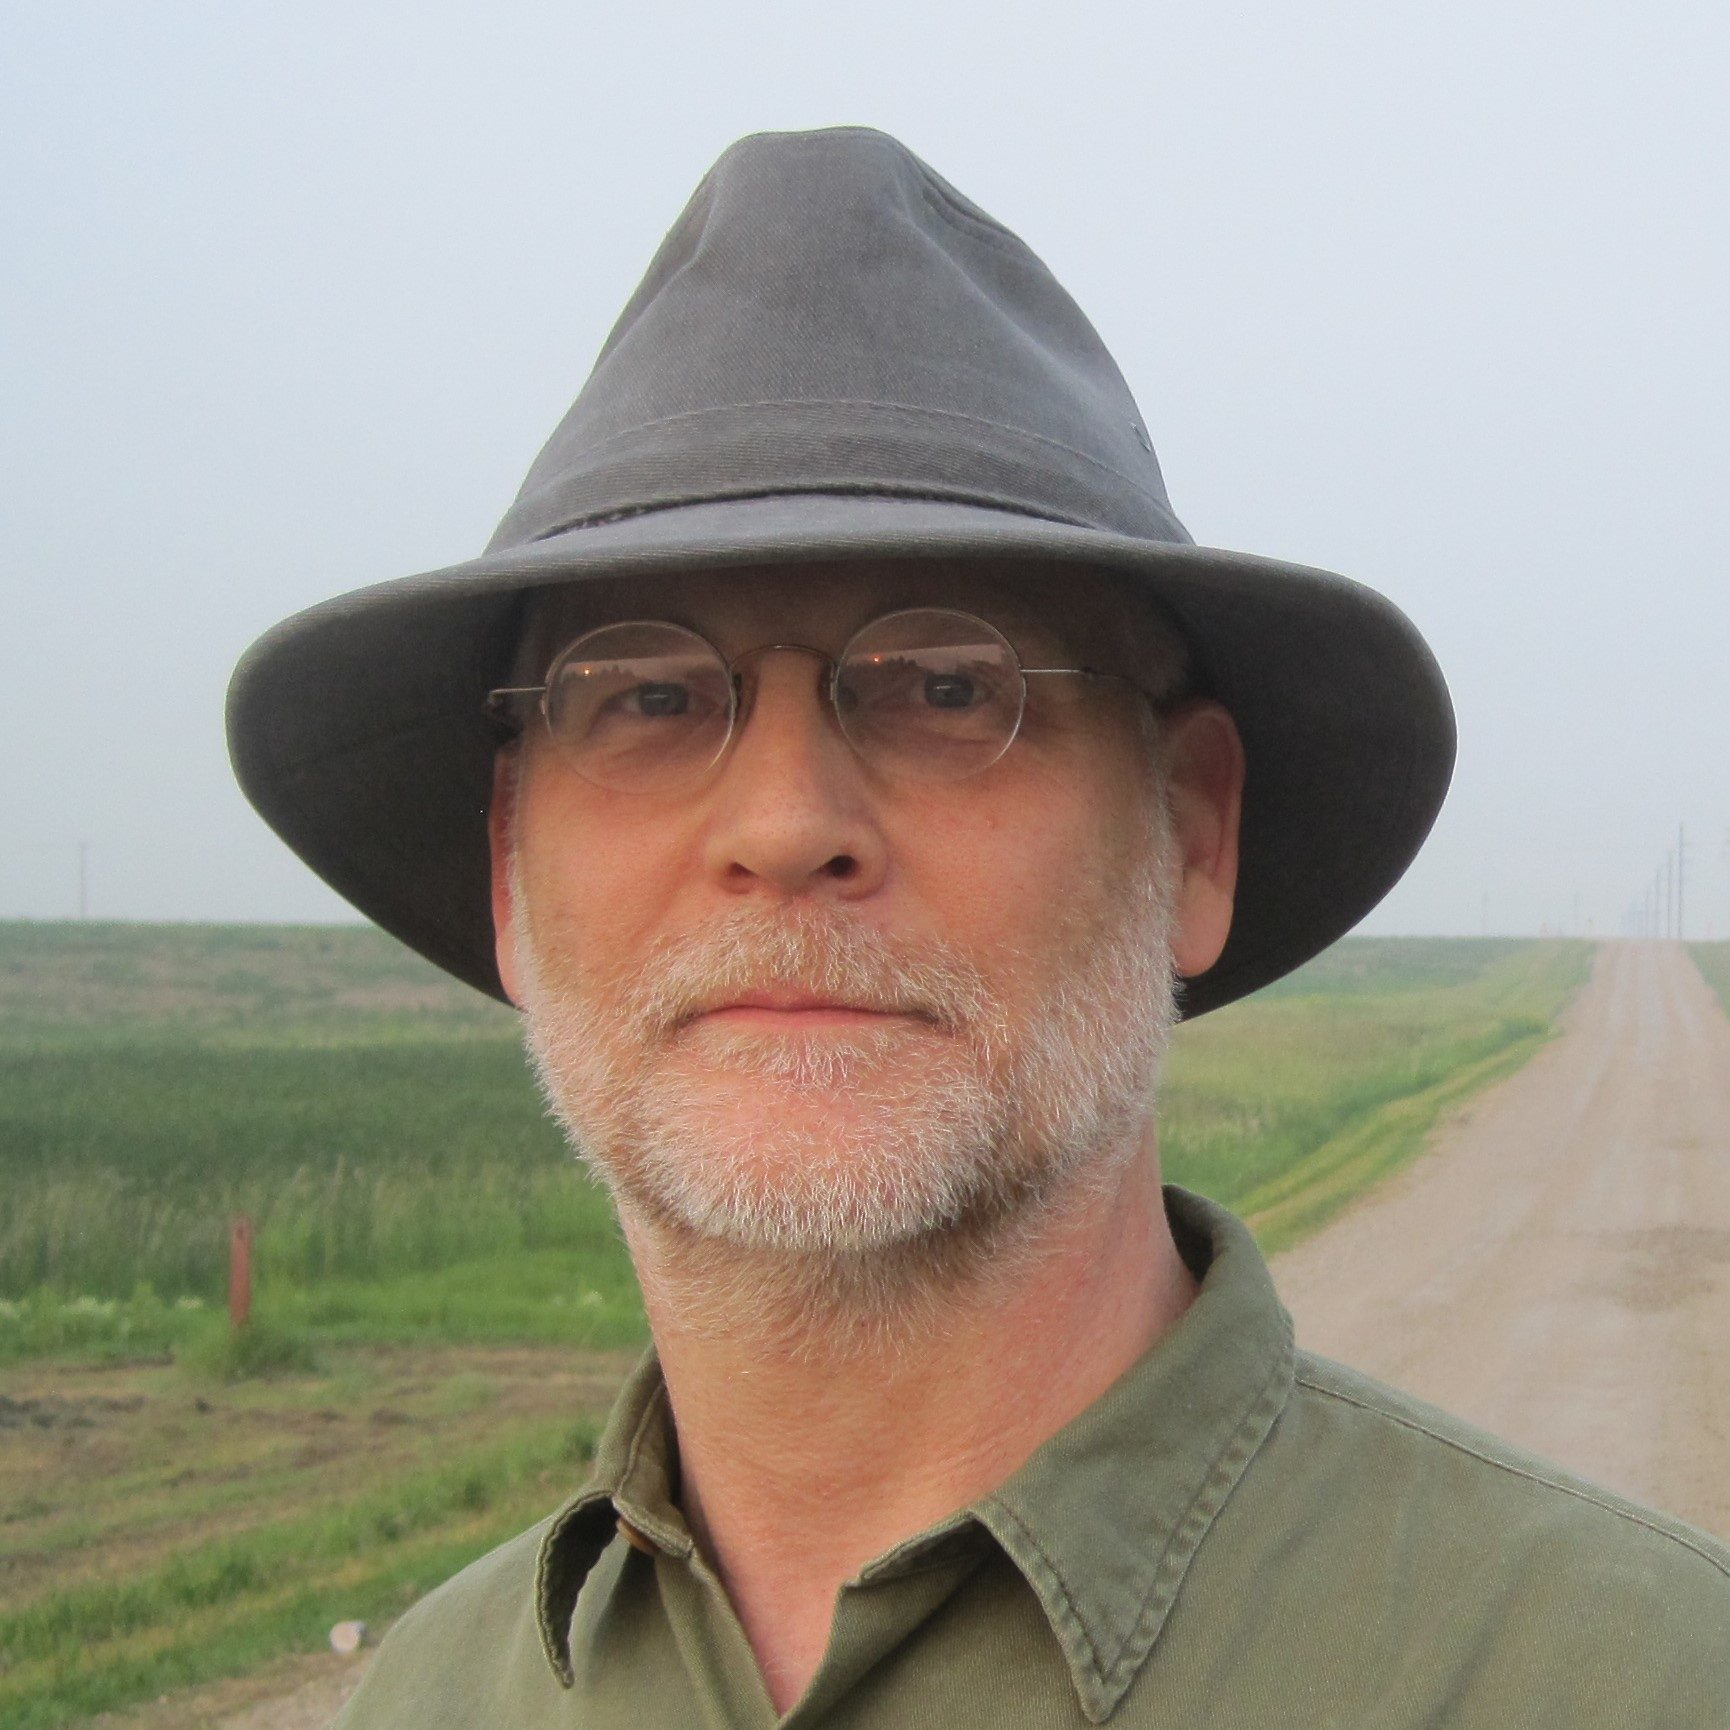 A photo of James Trettwer, the author of Thorn-Field.